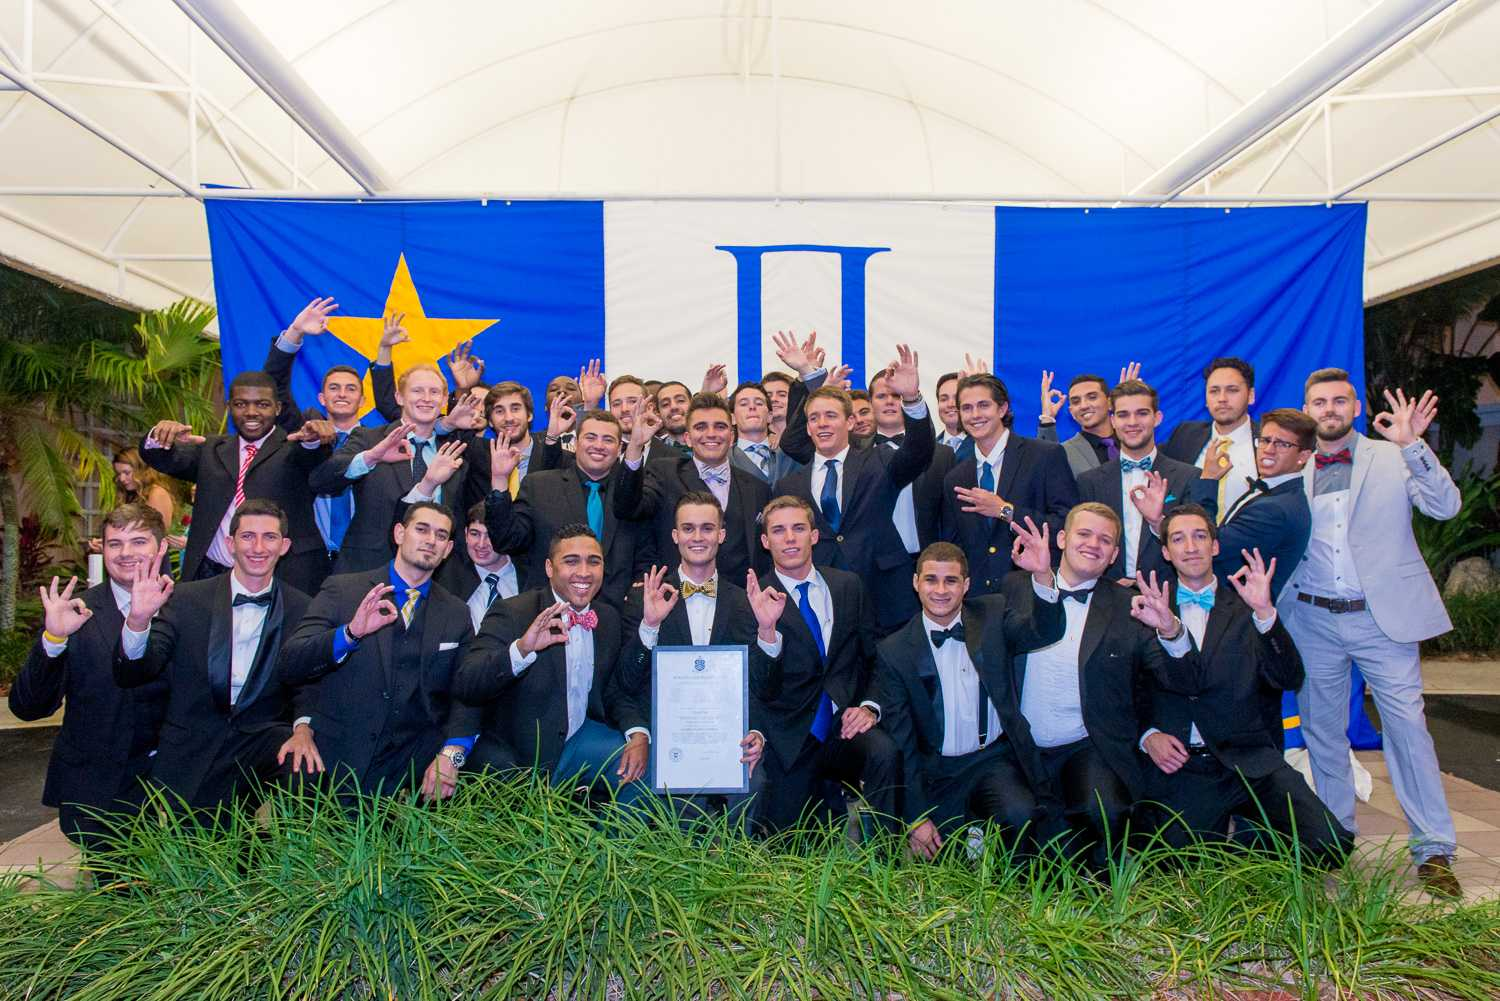 The brothers of Pi Kappa Phi pose for a photo with their flag after the chartering ceremony on Saturday night.  Max Jackson | Photo Editor